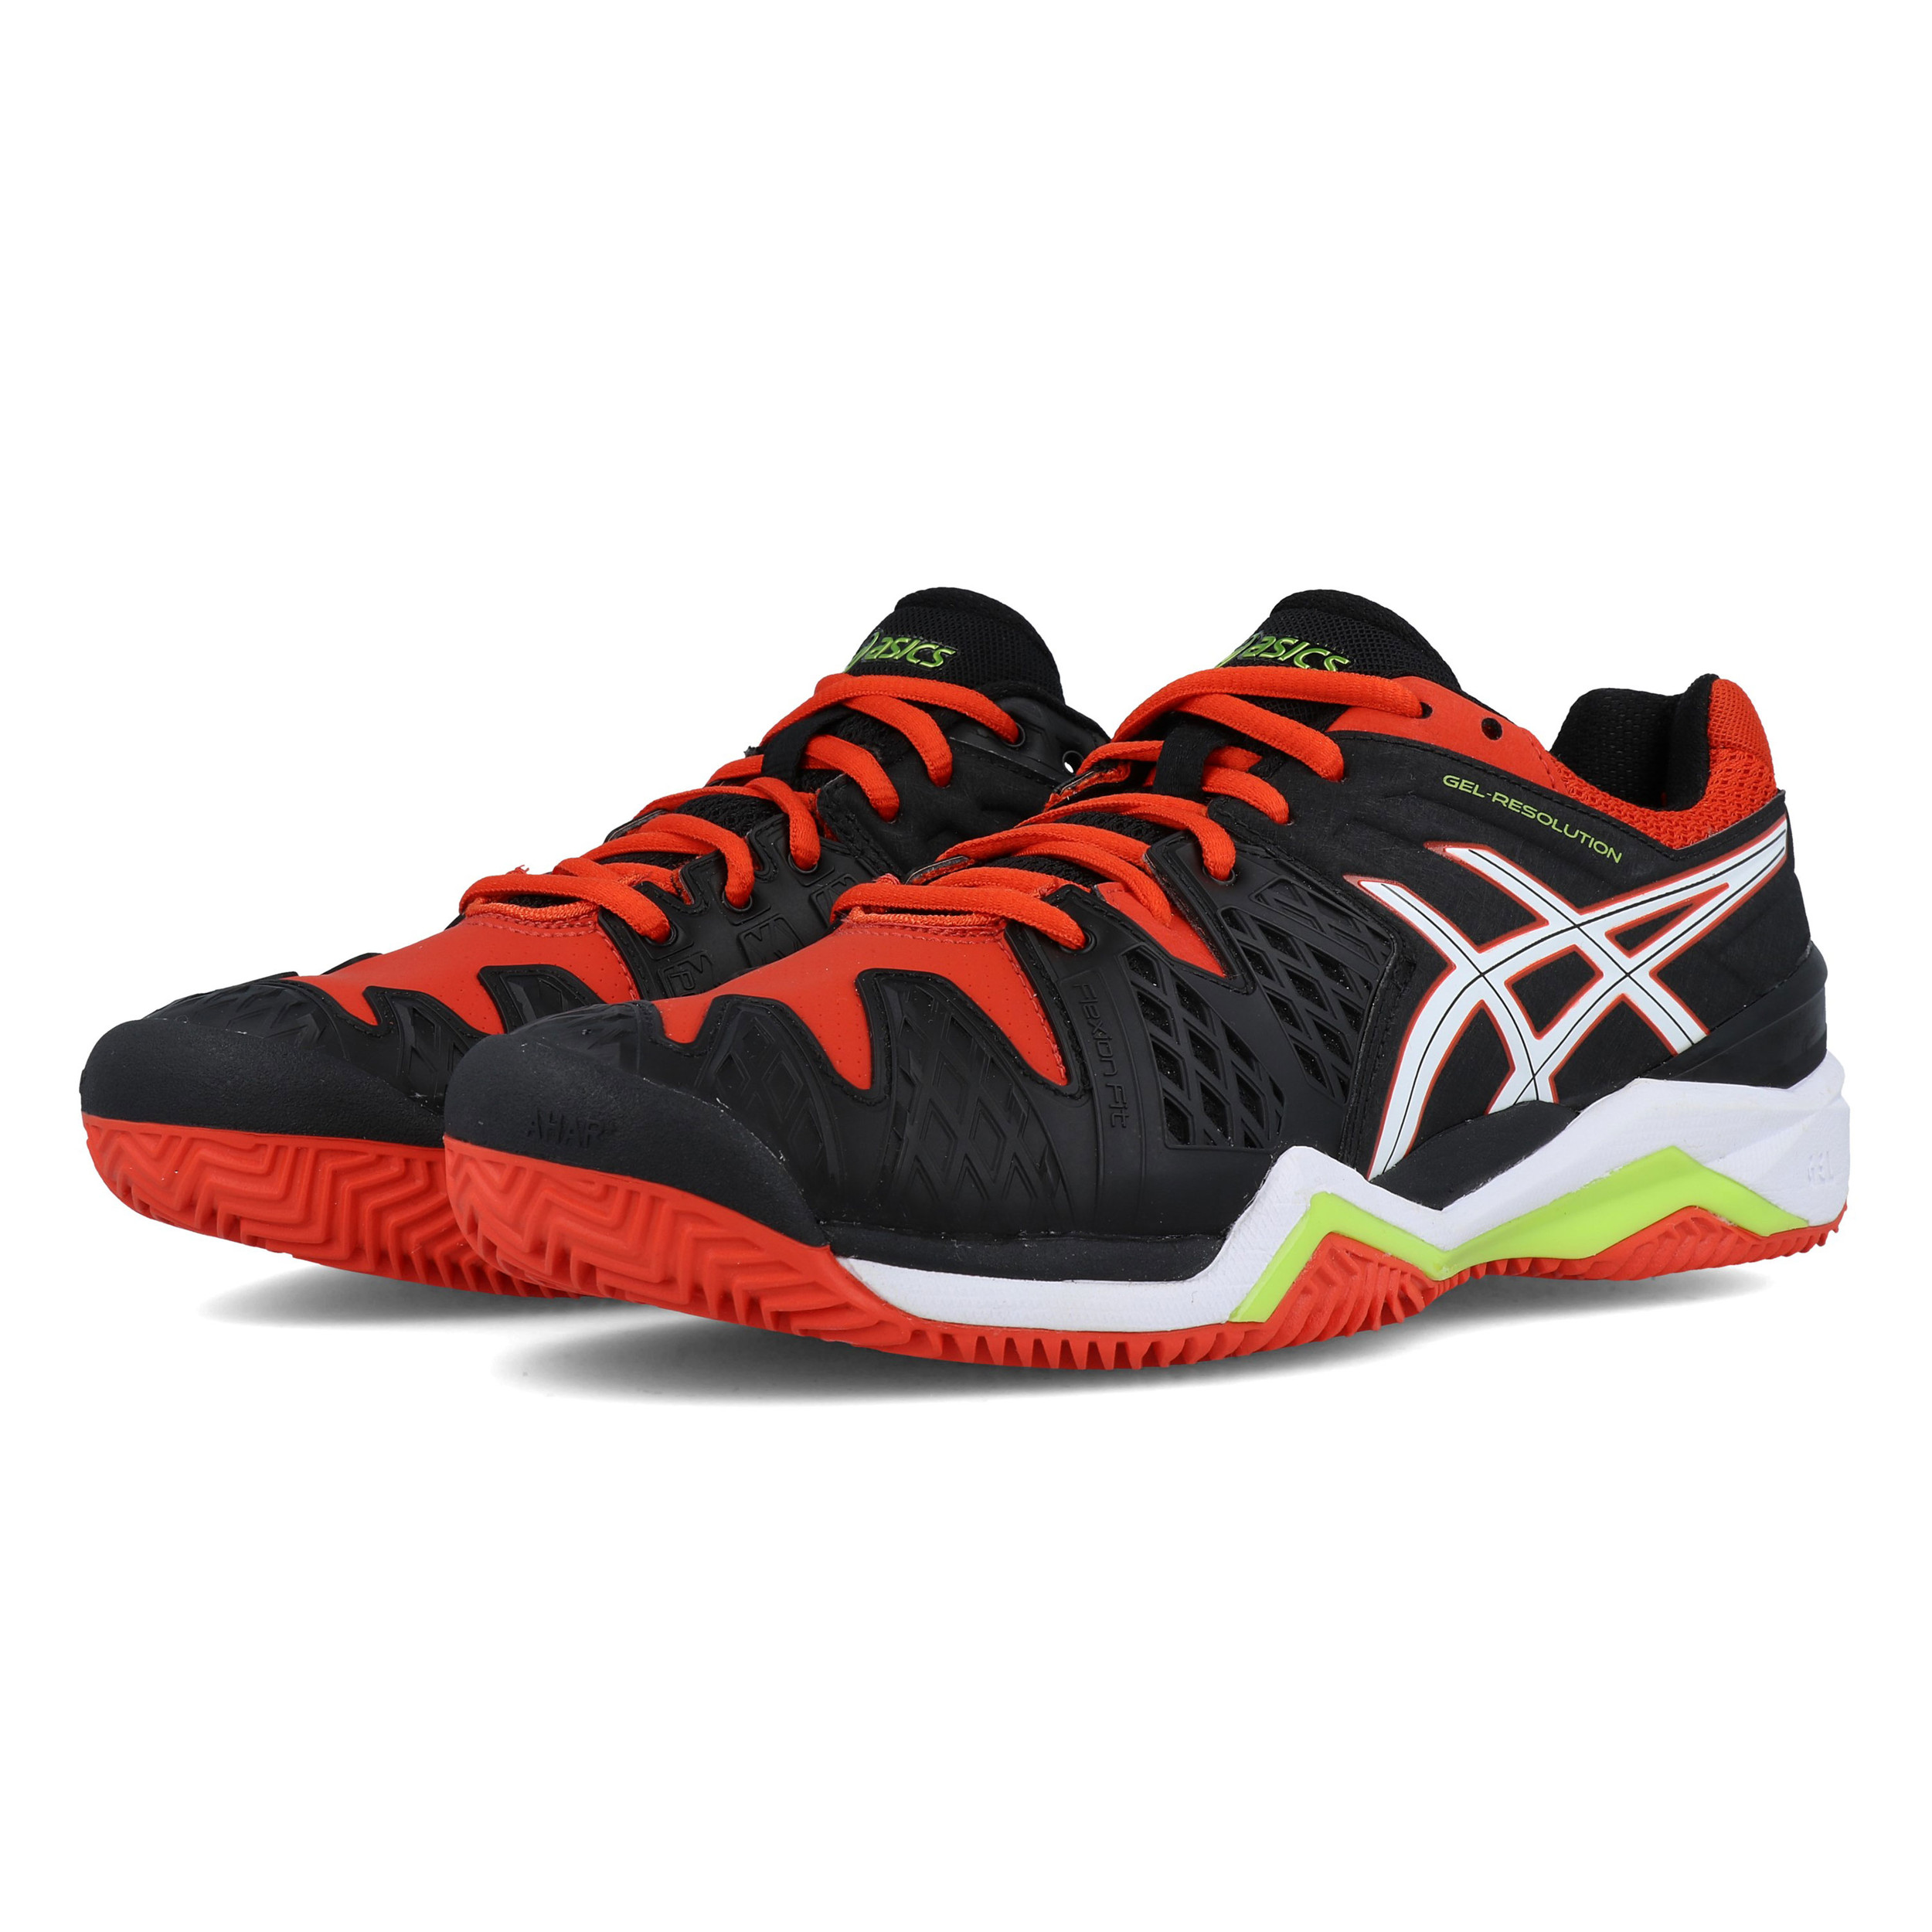 cheaper 6f3f0 5b45e An AHAR+ outsole completes the Gel-Resolution 6. 50% more durable than  standard Asics High Abrasion Rubber, it uses pivot points to accommodate  for ...